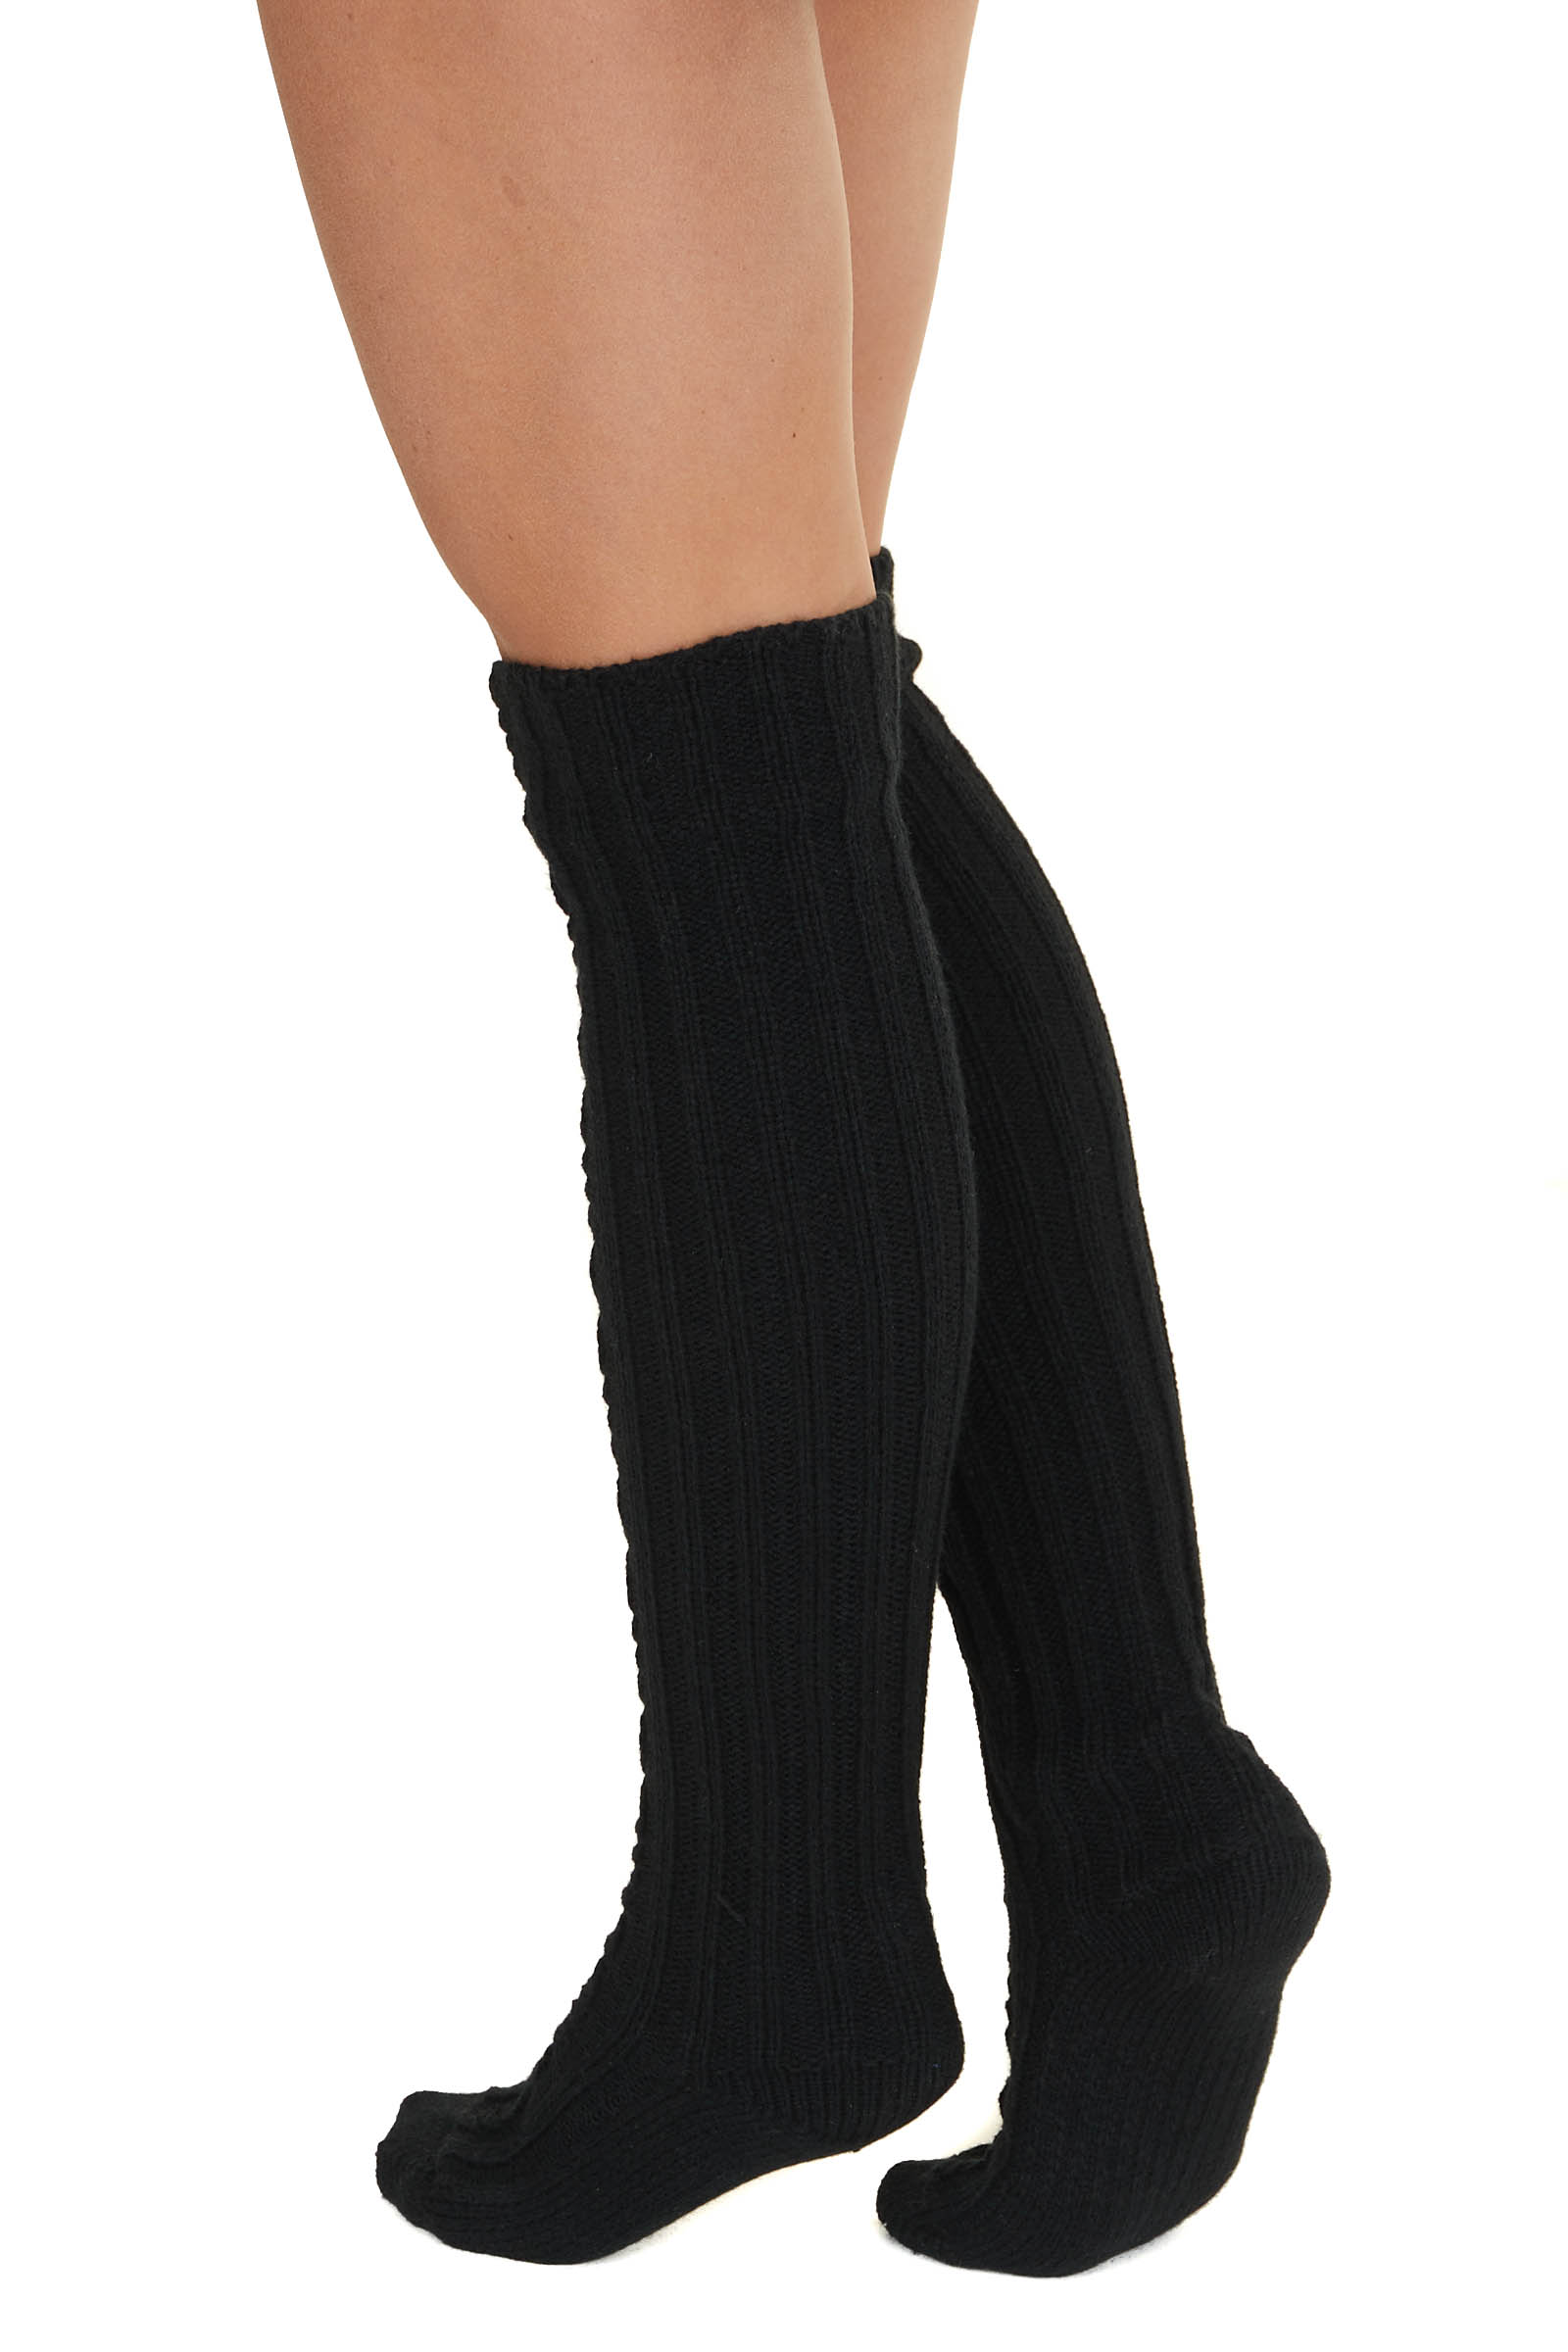 Black Cable Knit Textured Knee High Cozy Socks